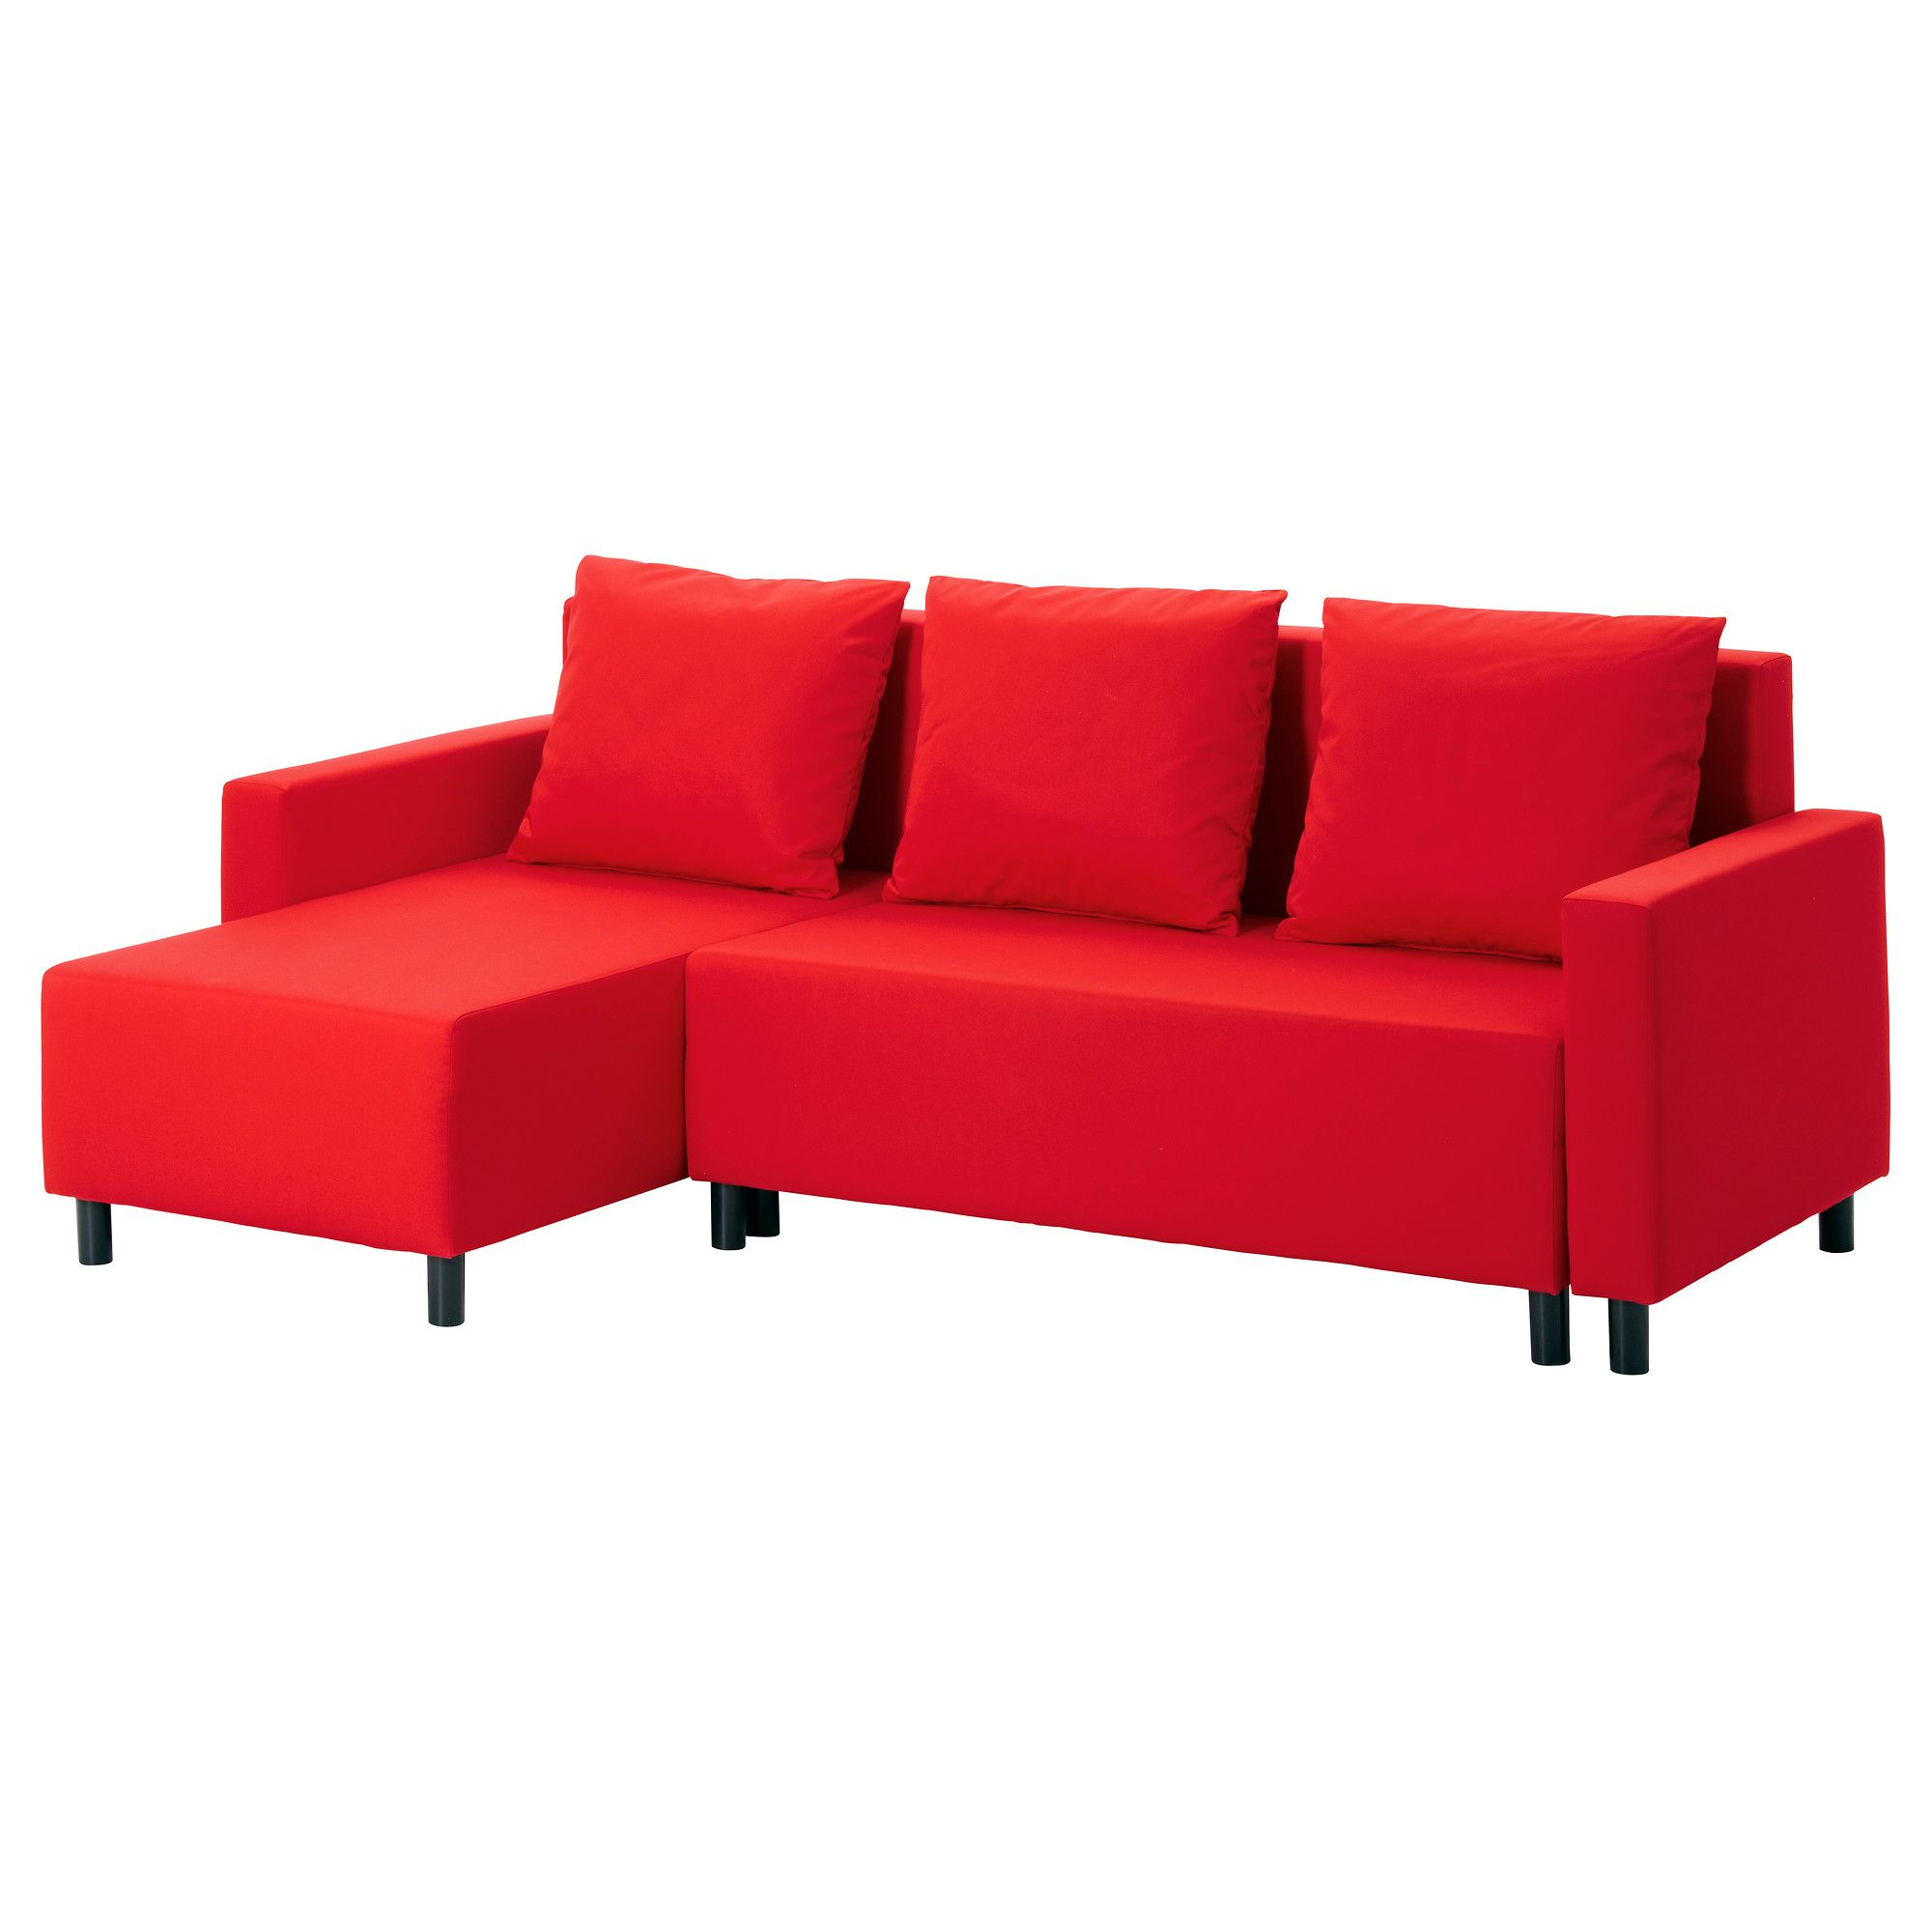 LUGNVIK Sofa bed with chaise lounge Grann red IKEA Pee Wee